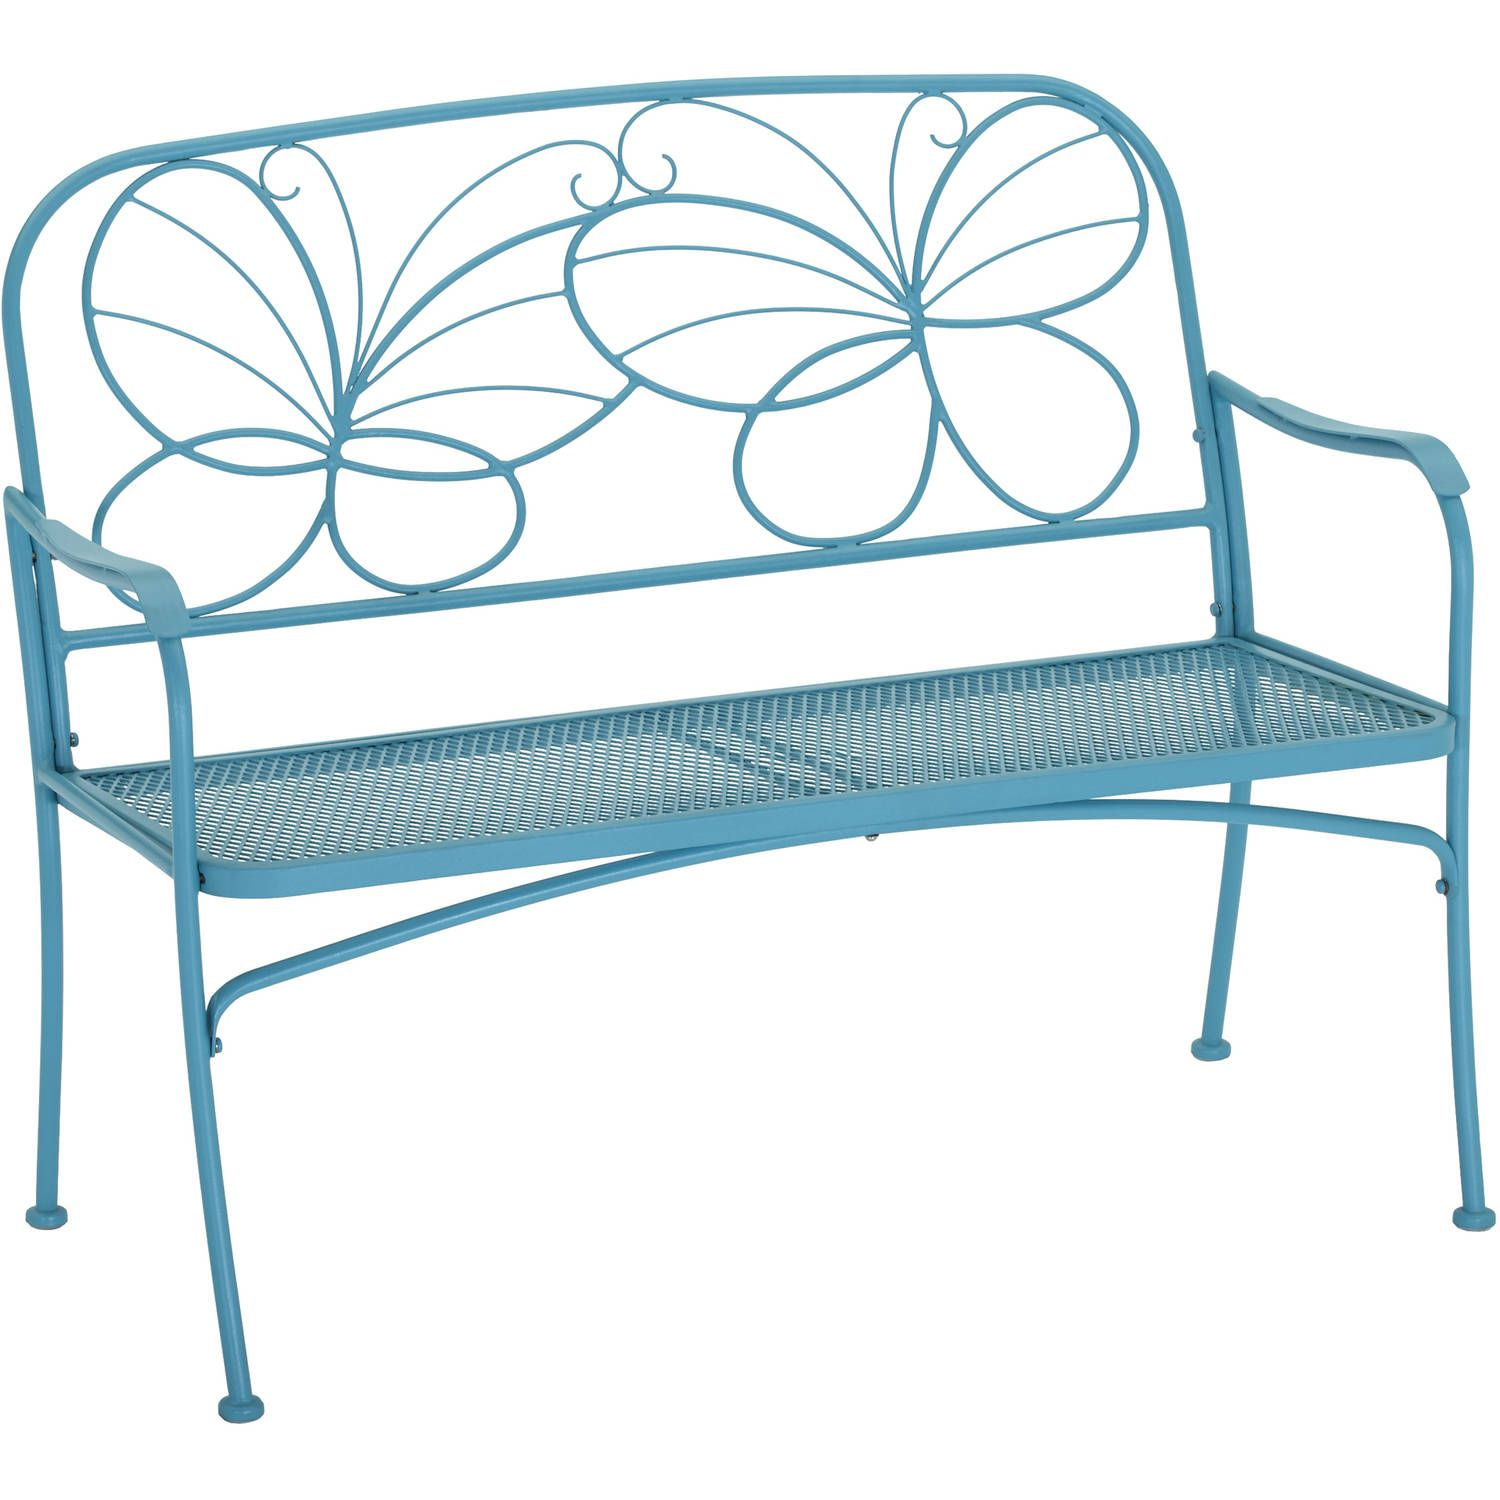 Buy Mainstays Butterfly Outdoor Patio Bench At Walmart.com